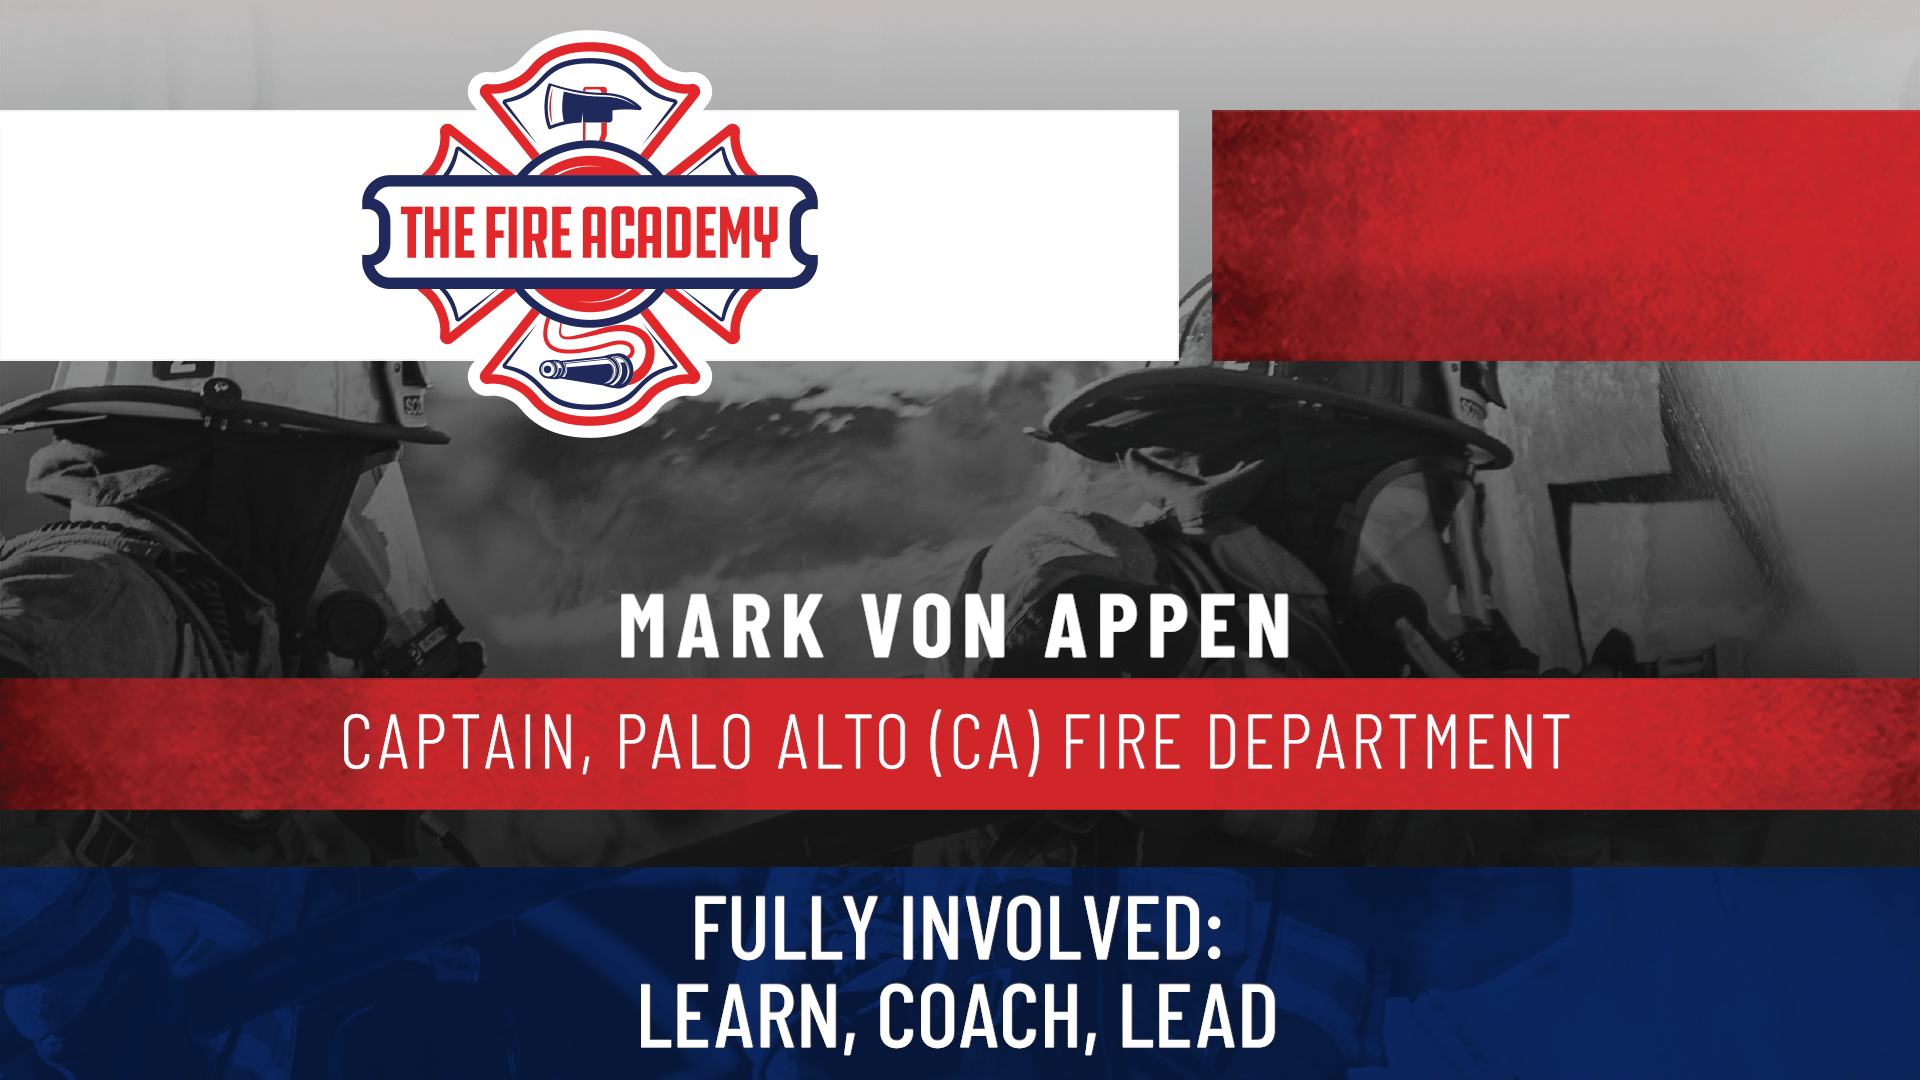 Fully Involved: Learn, Coach, Lead